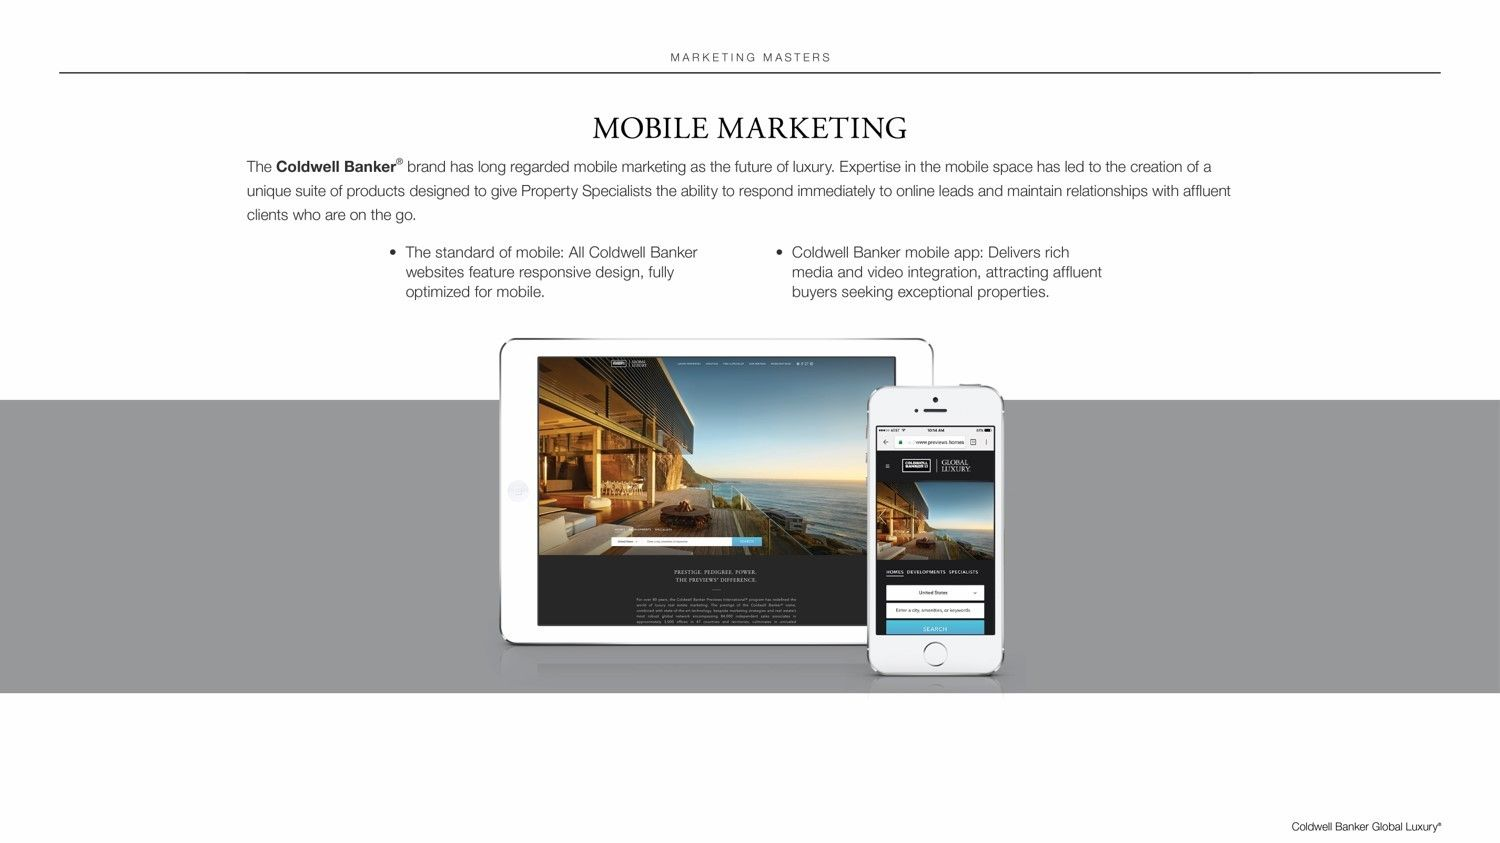 coldwell-banker-global-luxury-mobile-marketing